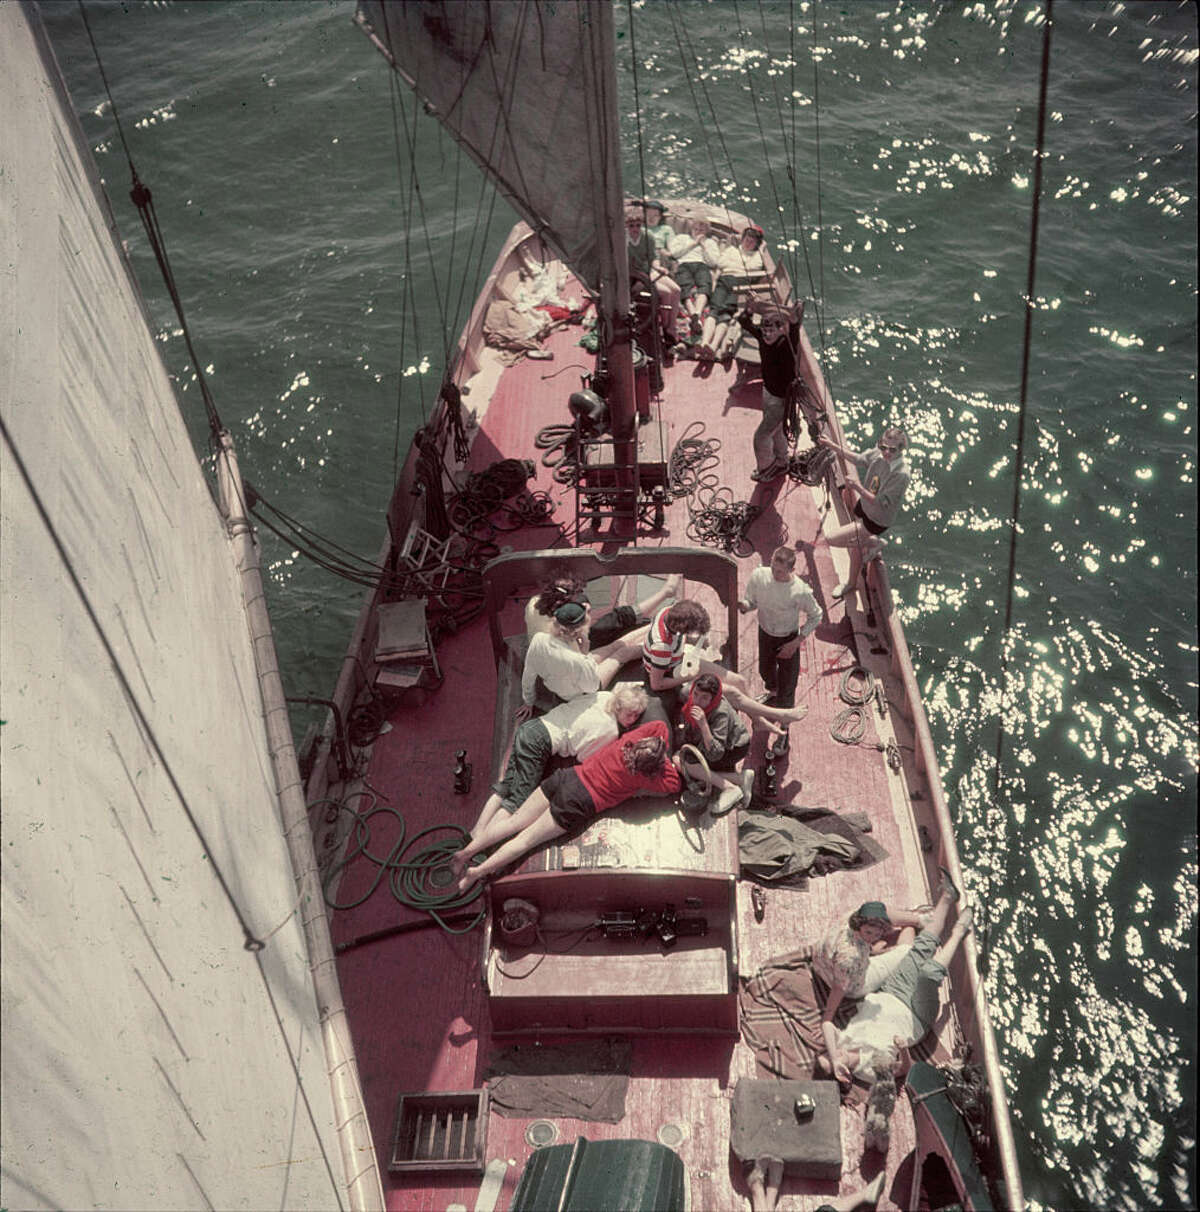 View, from the mast of a sailboat, of a group of teenagers as they lounge on the boat's deck, Seattle, Washington, 1950. (Photo by Loomis Dean/Time & Life Pictures/Getty Images)